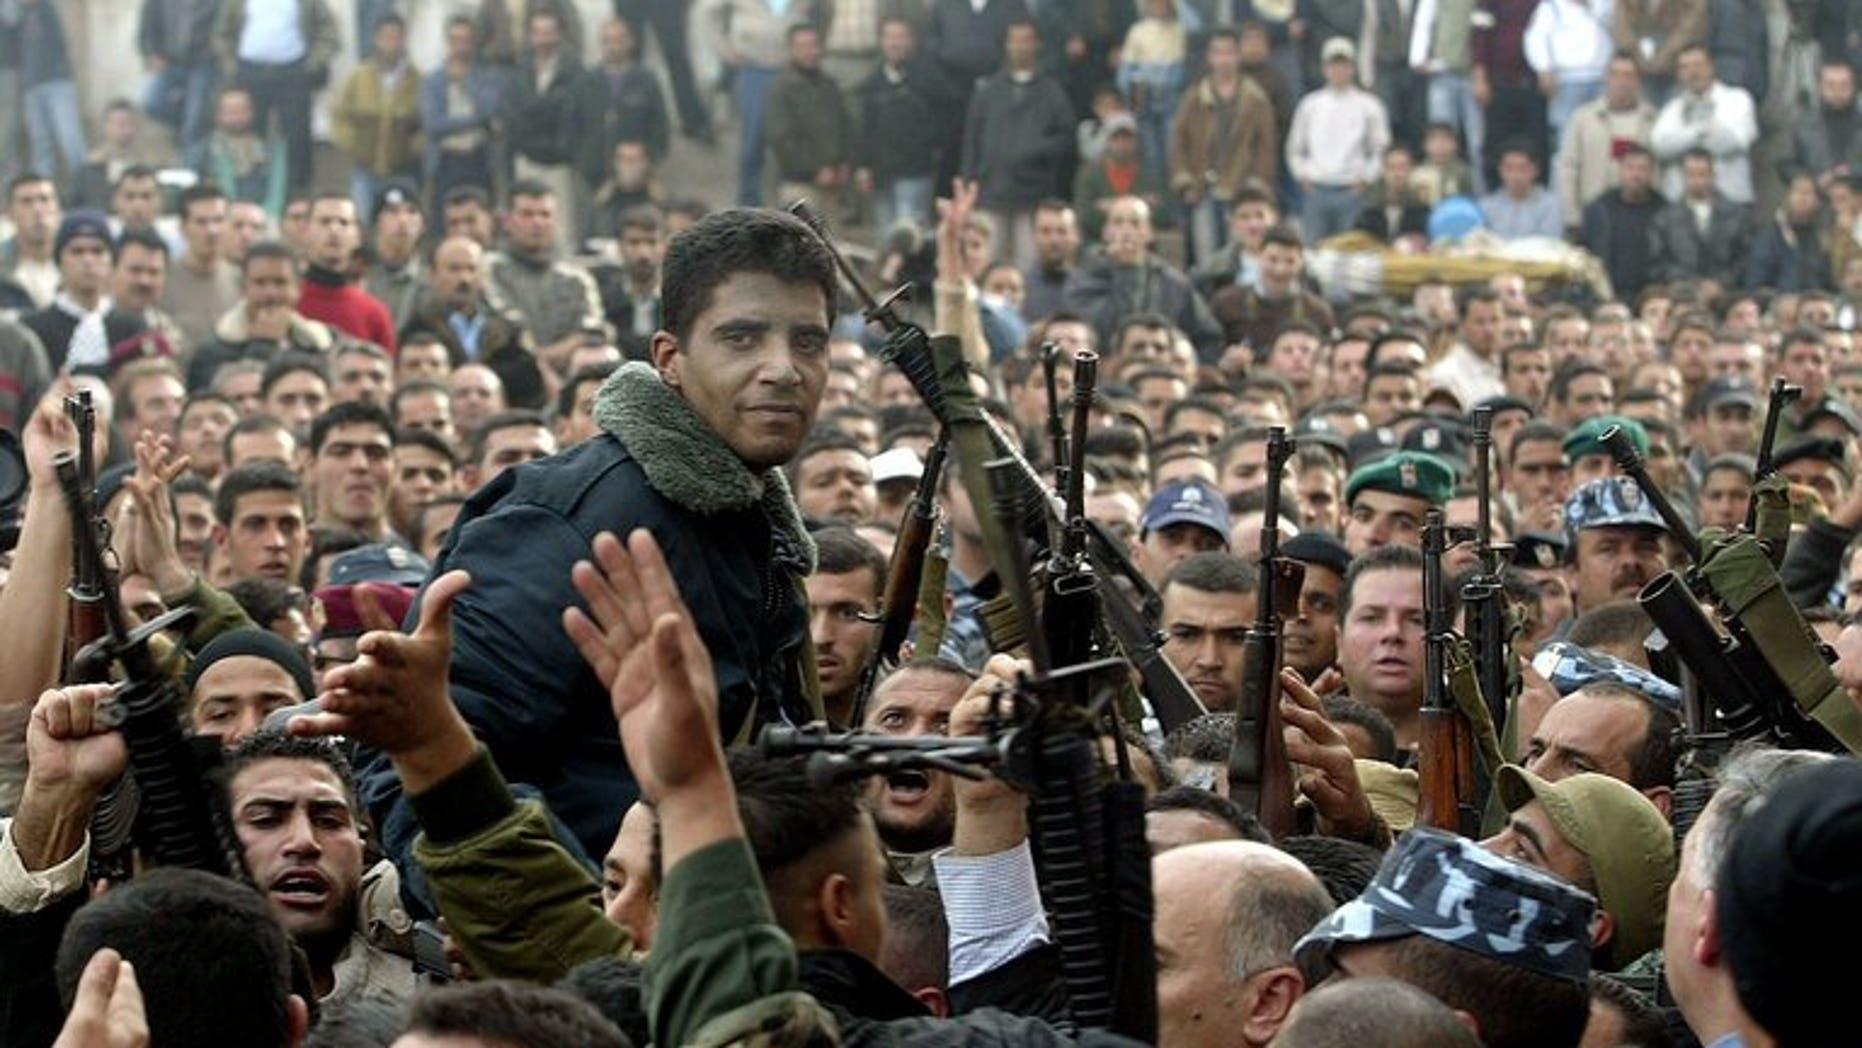 Palestinian militant leader Zakaria Zubeidi (center) and supporters take part in a rally in the West Bank town of Jenin on December 30, 2004. Zubeidi's brother, Daoud Zubeidi, was arrested by Israeli security forces on Friday, Palestinian security forces said.